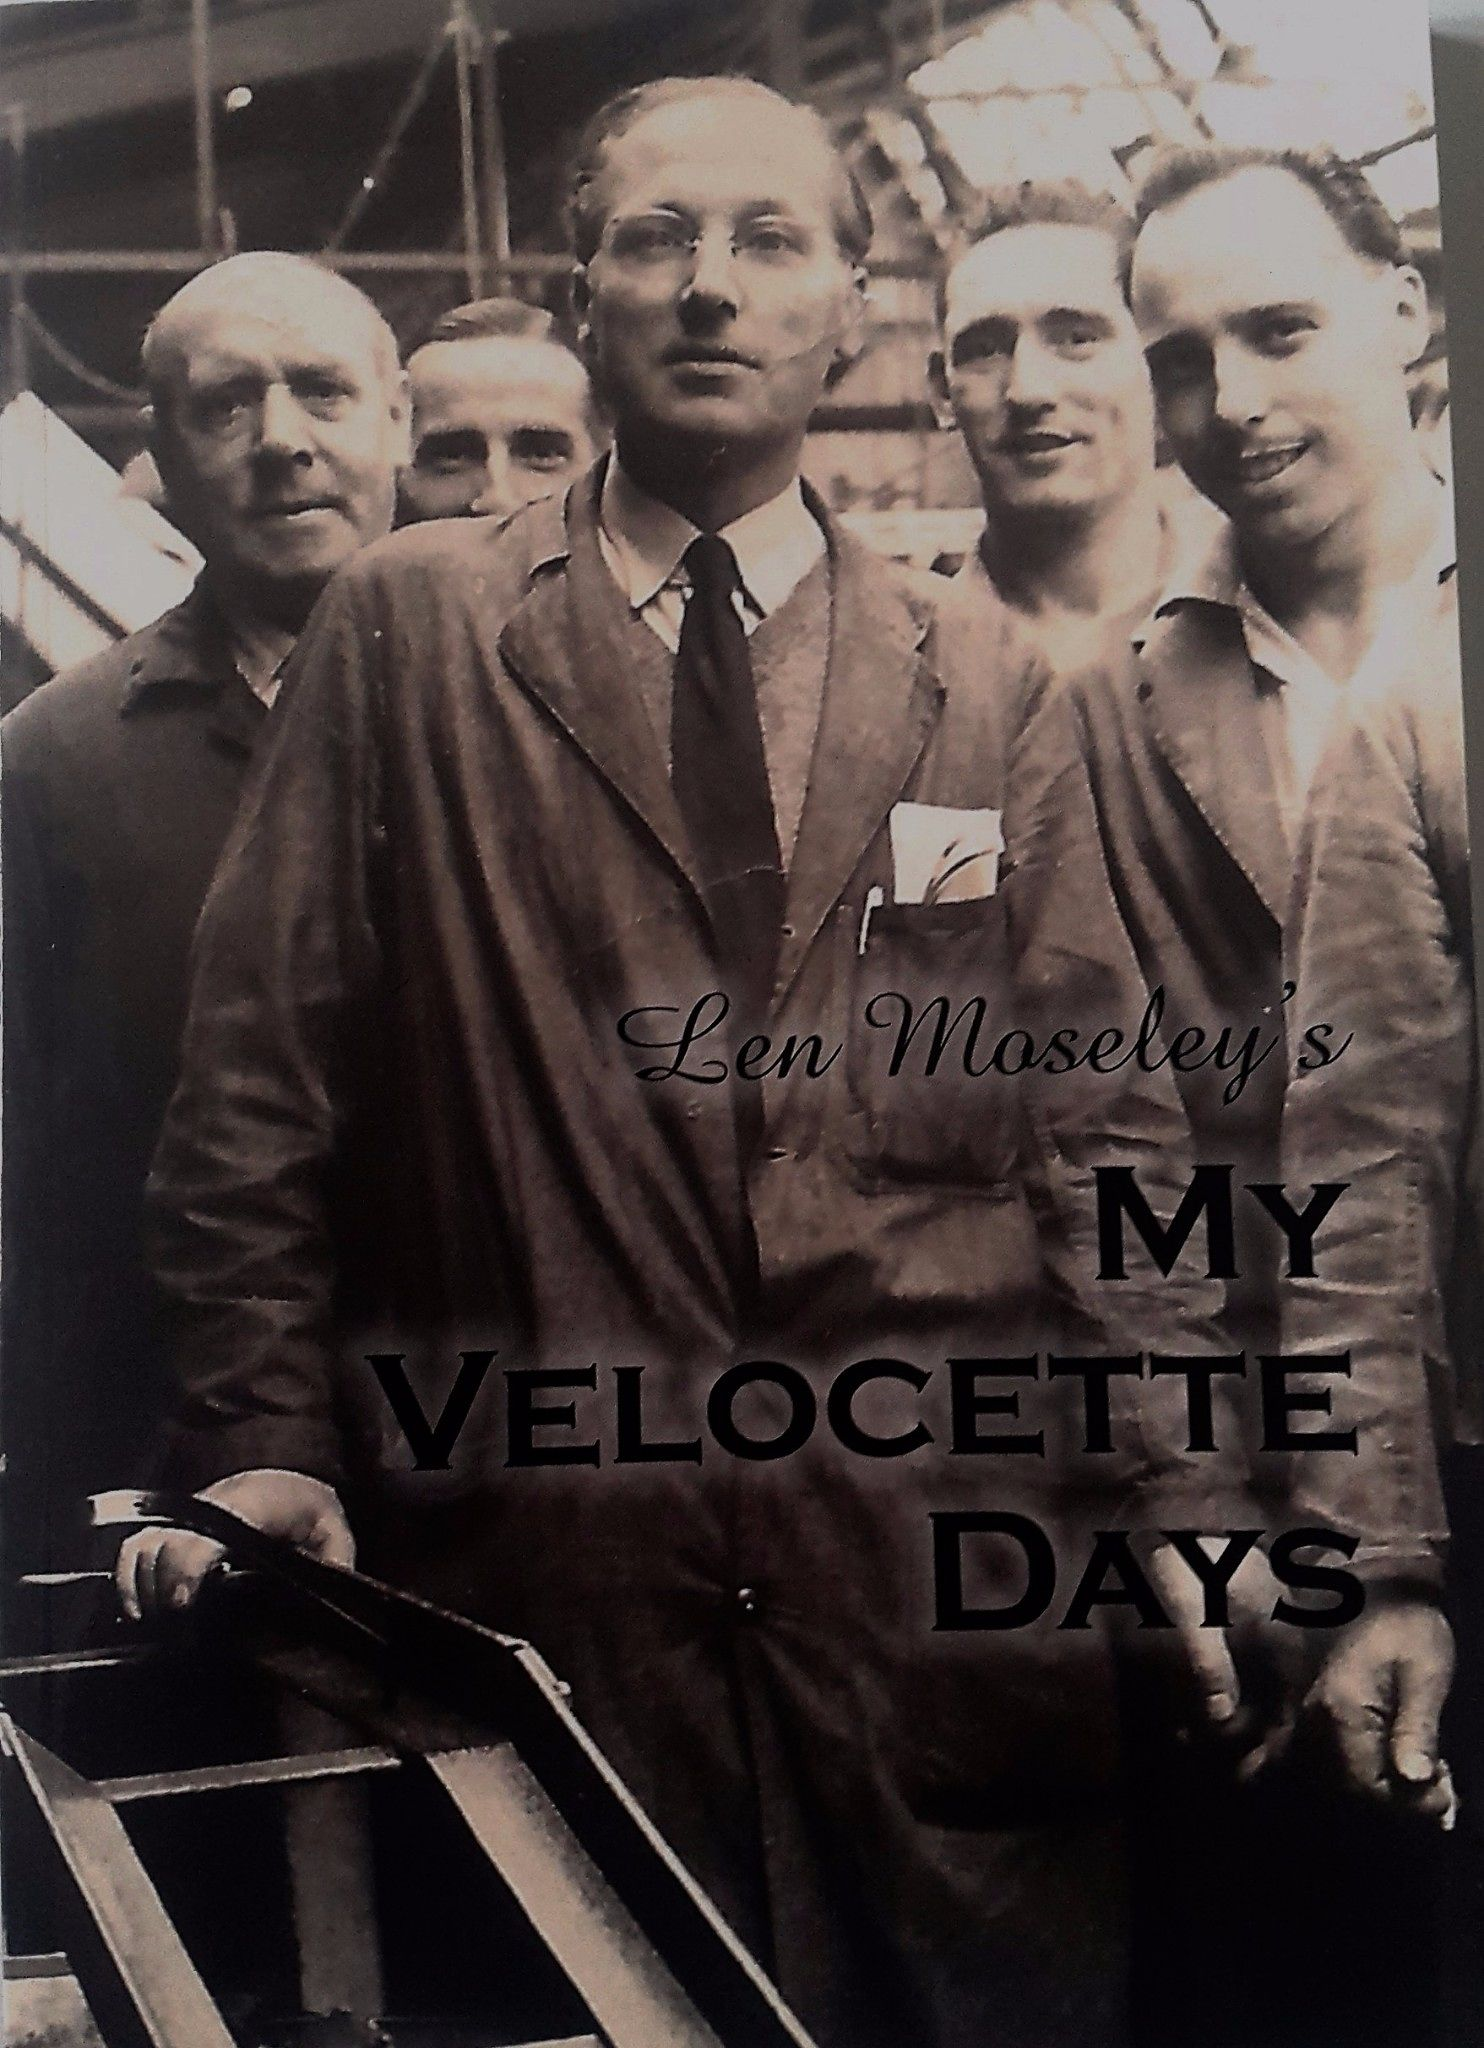 My Velocette Days by Len Moseley